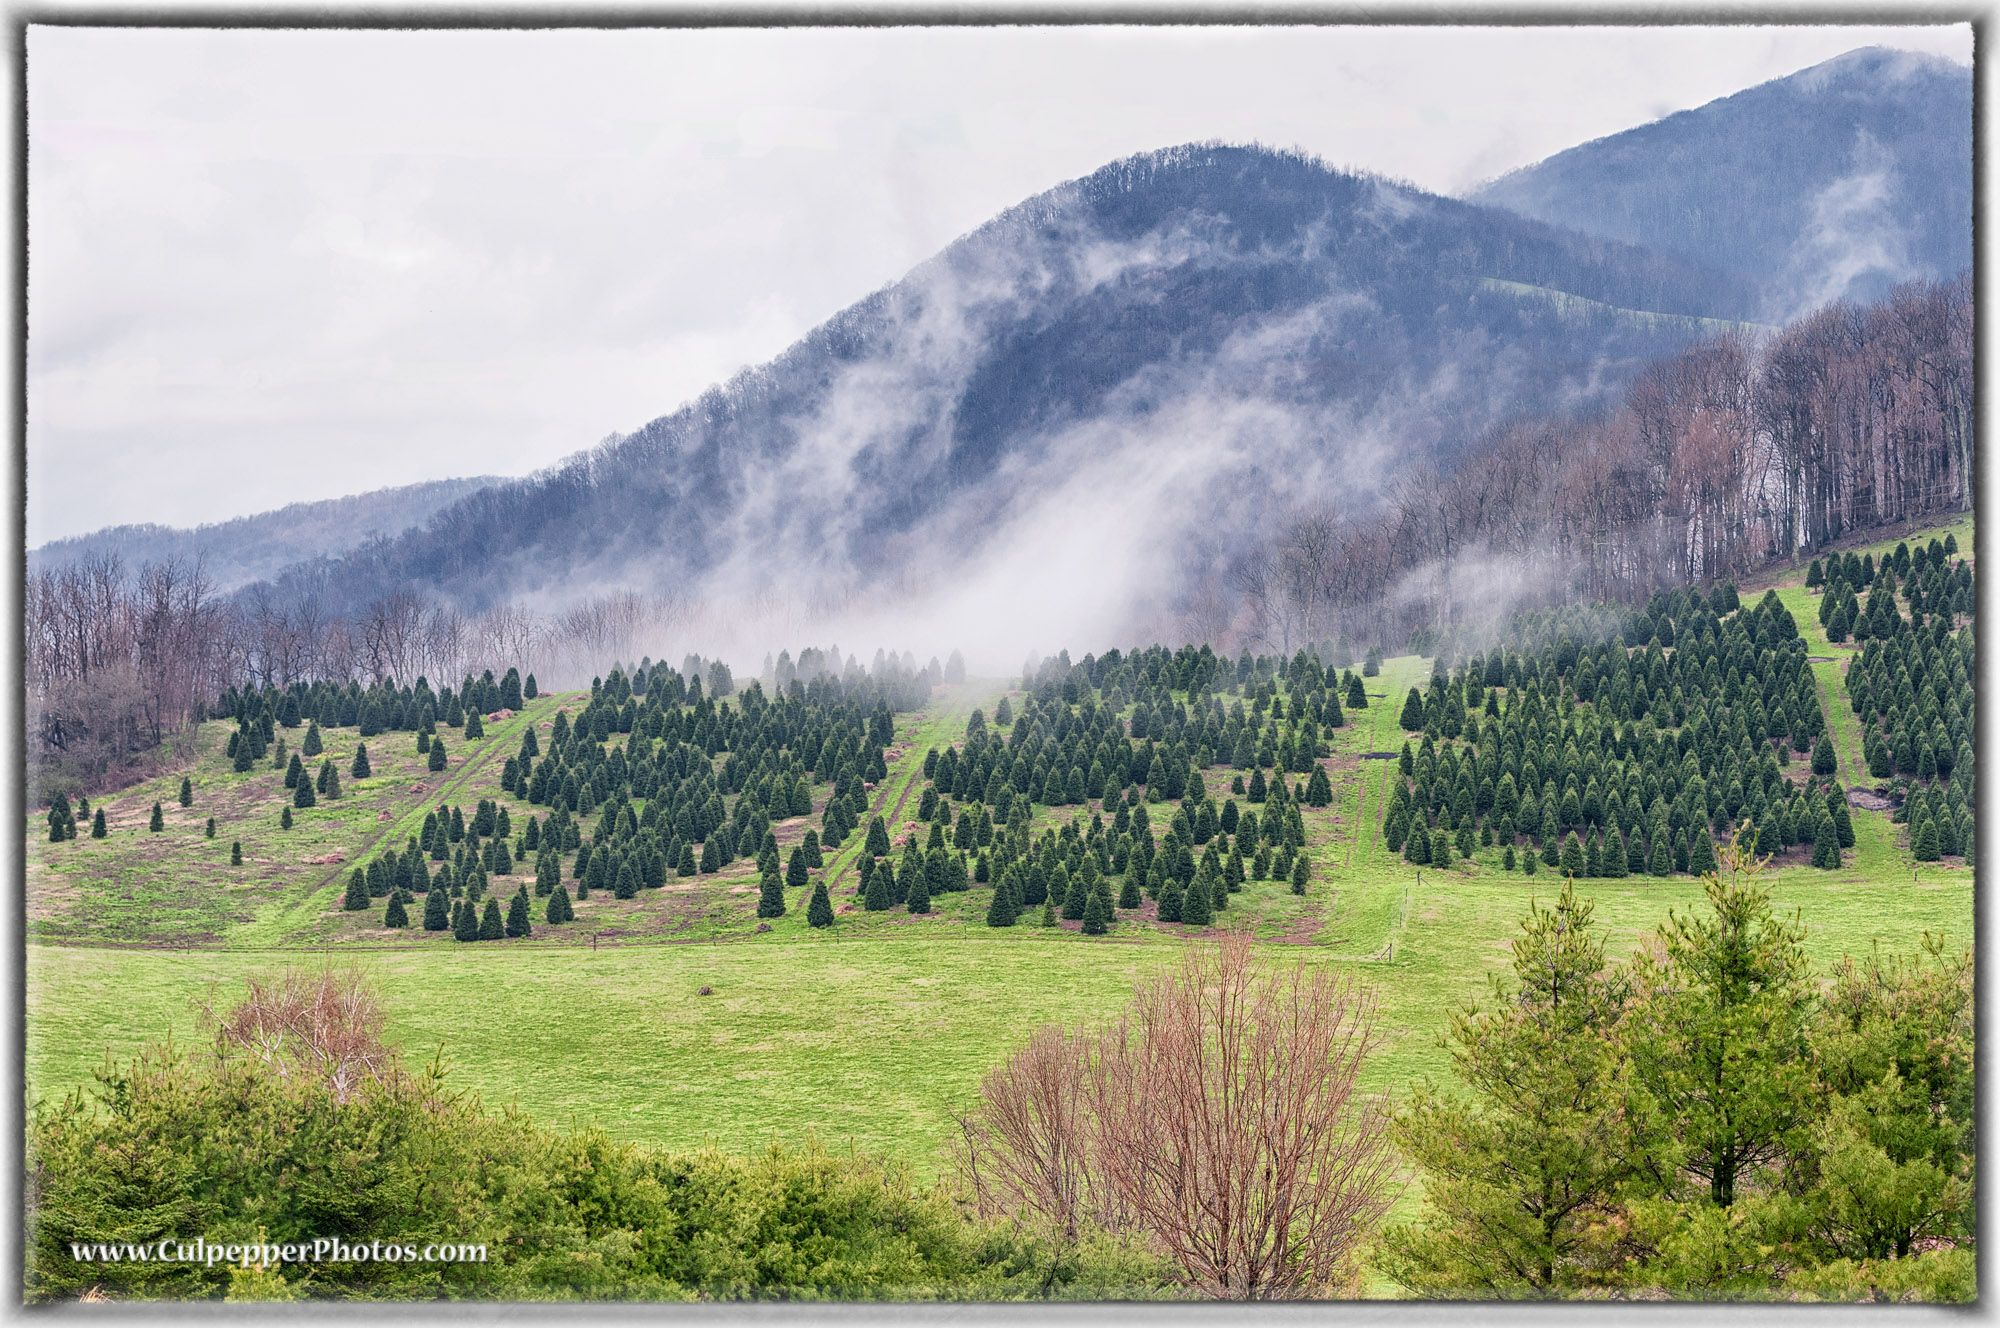 One more photo of a Christmas tree farm near Boone North Carolina. Photo from April 2014 at an ...